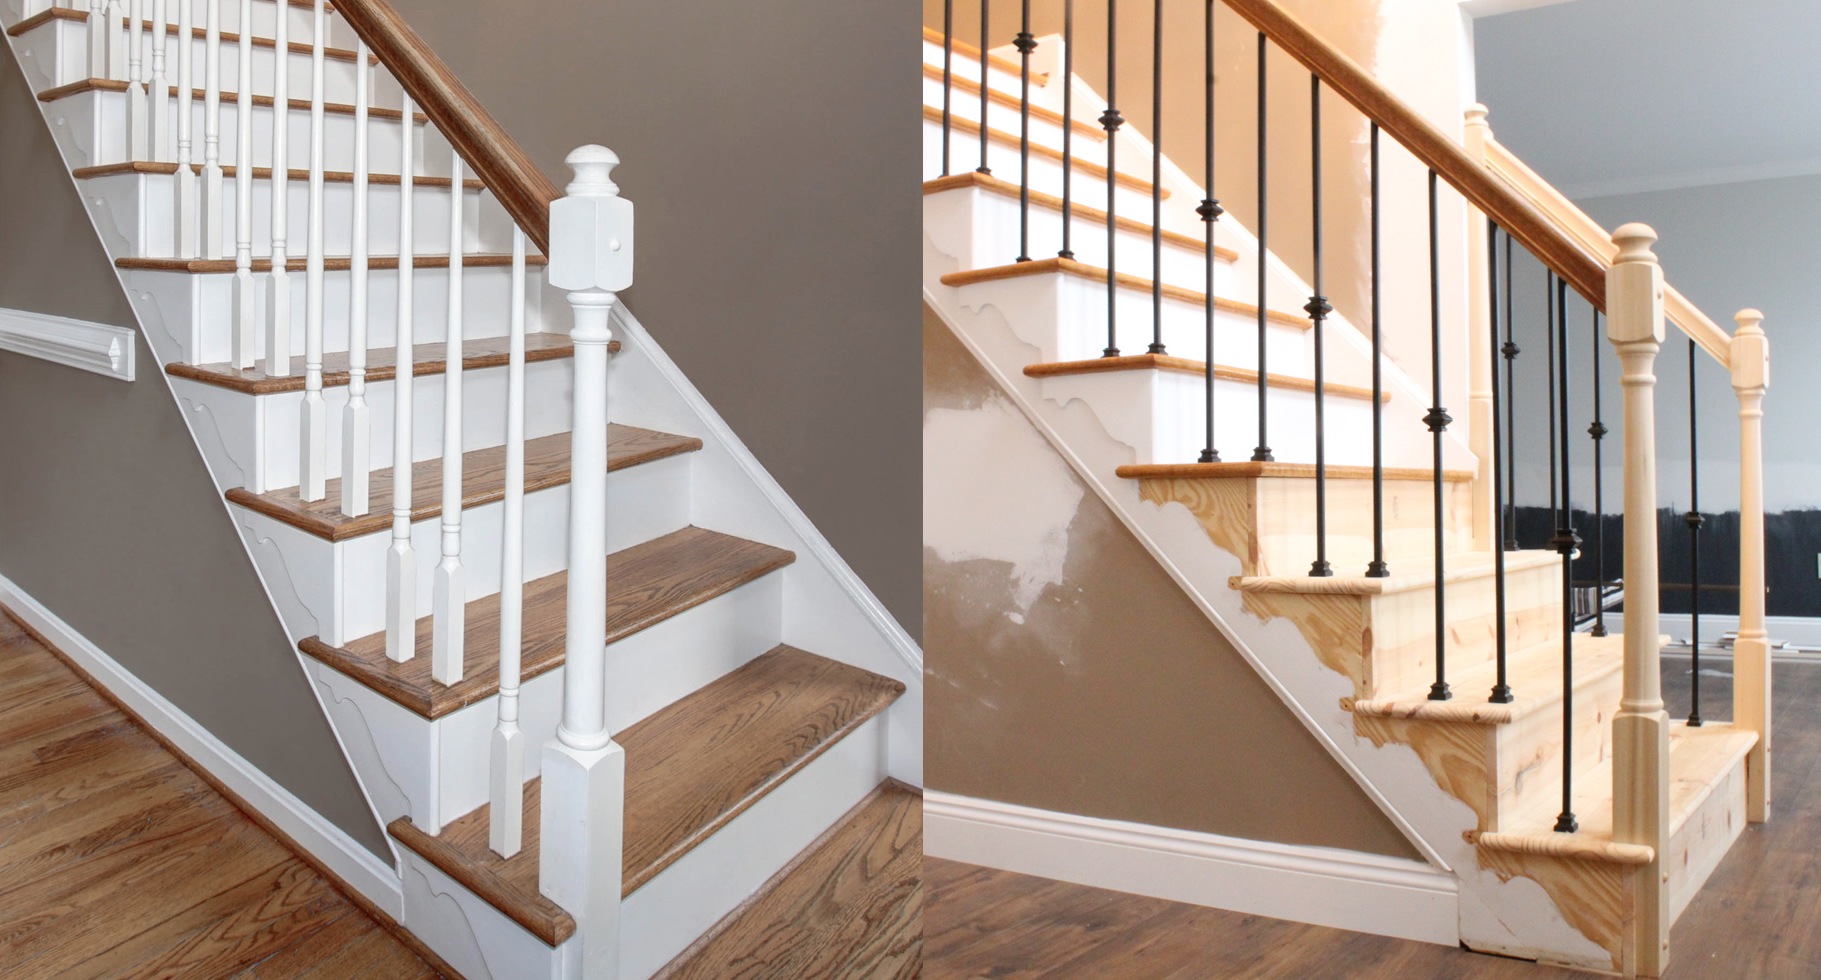 A Renovation Story Changing Wood Stair Balusters To Iron